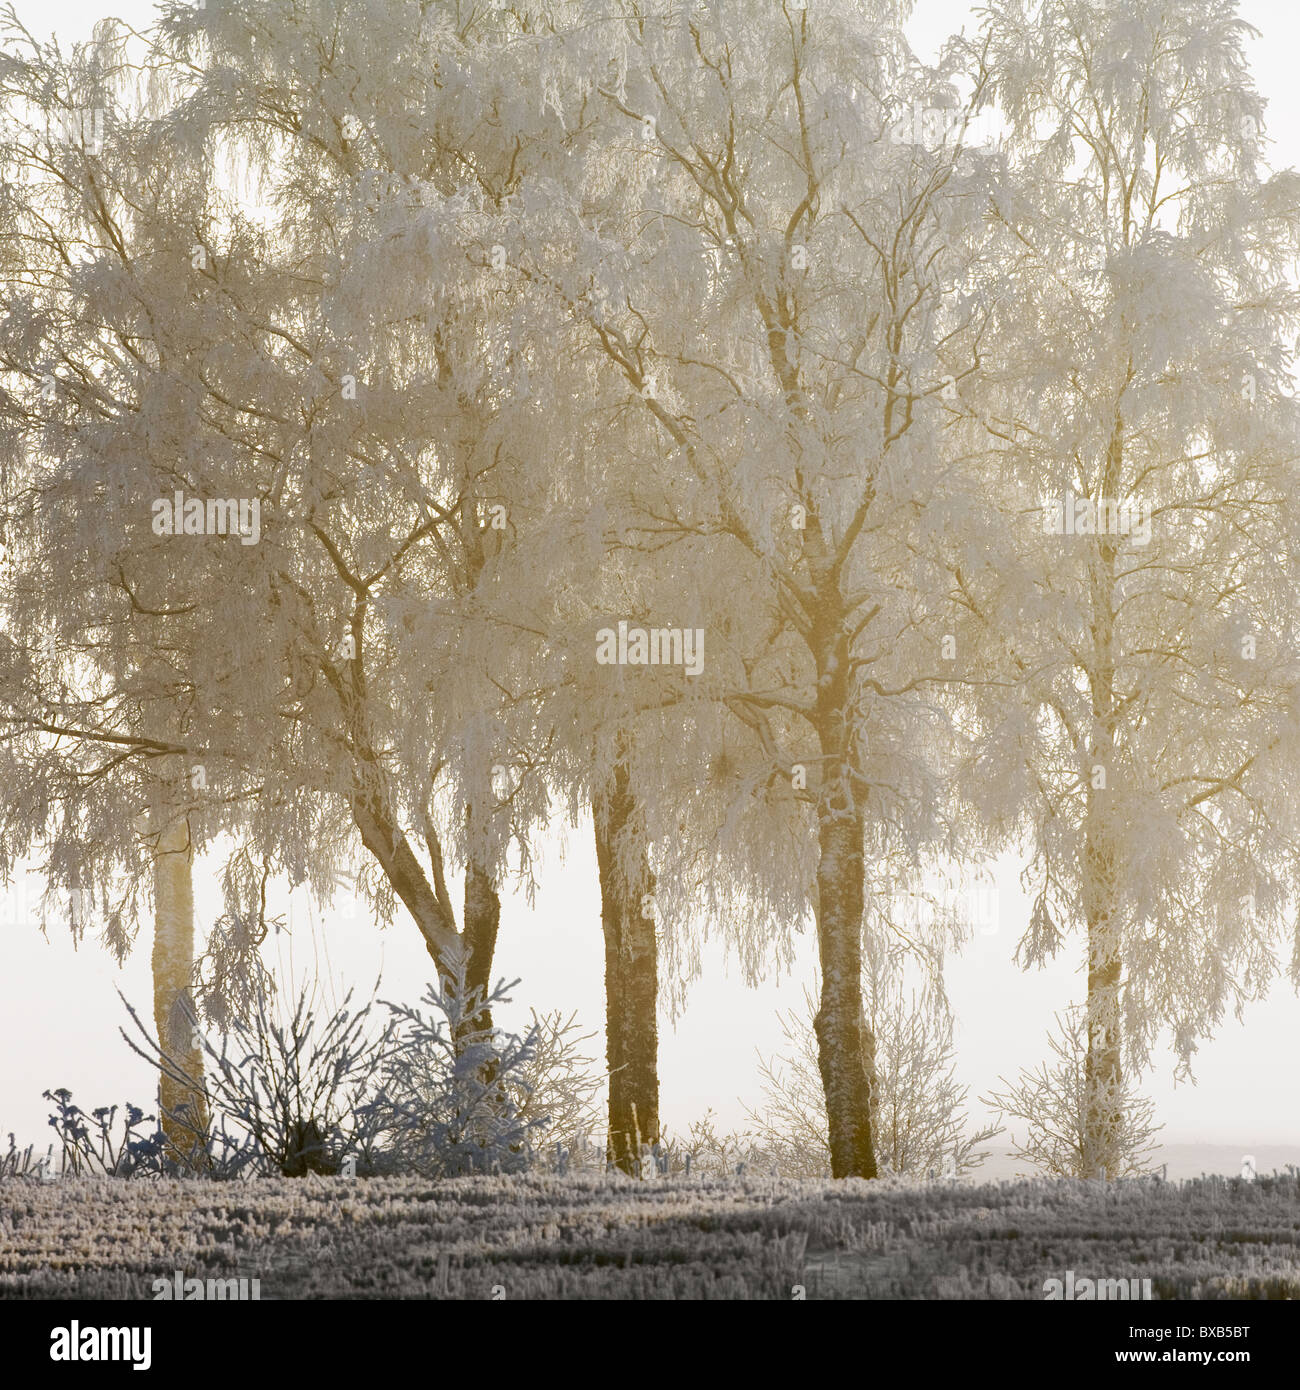 Frosted trees - Stock Image